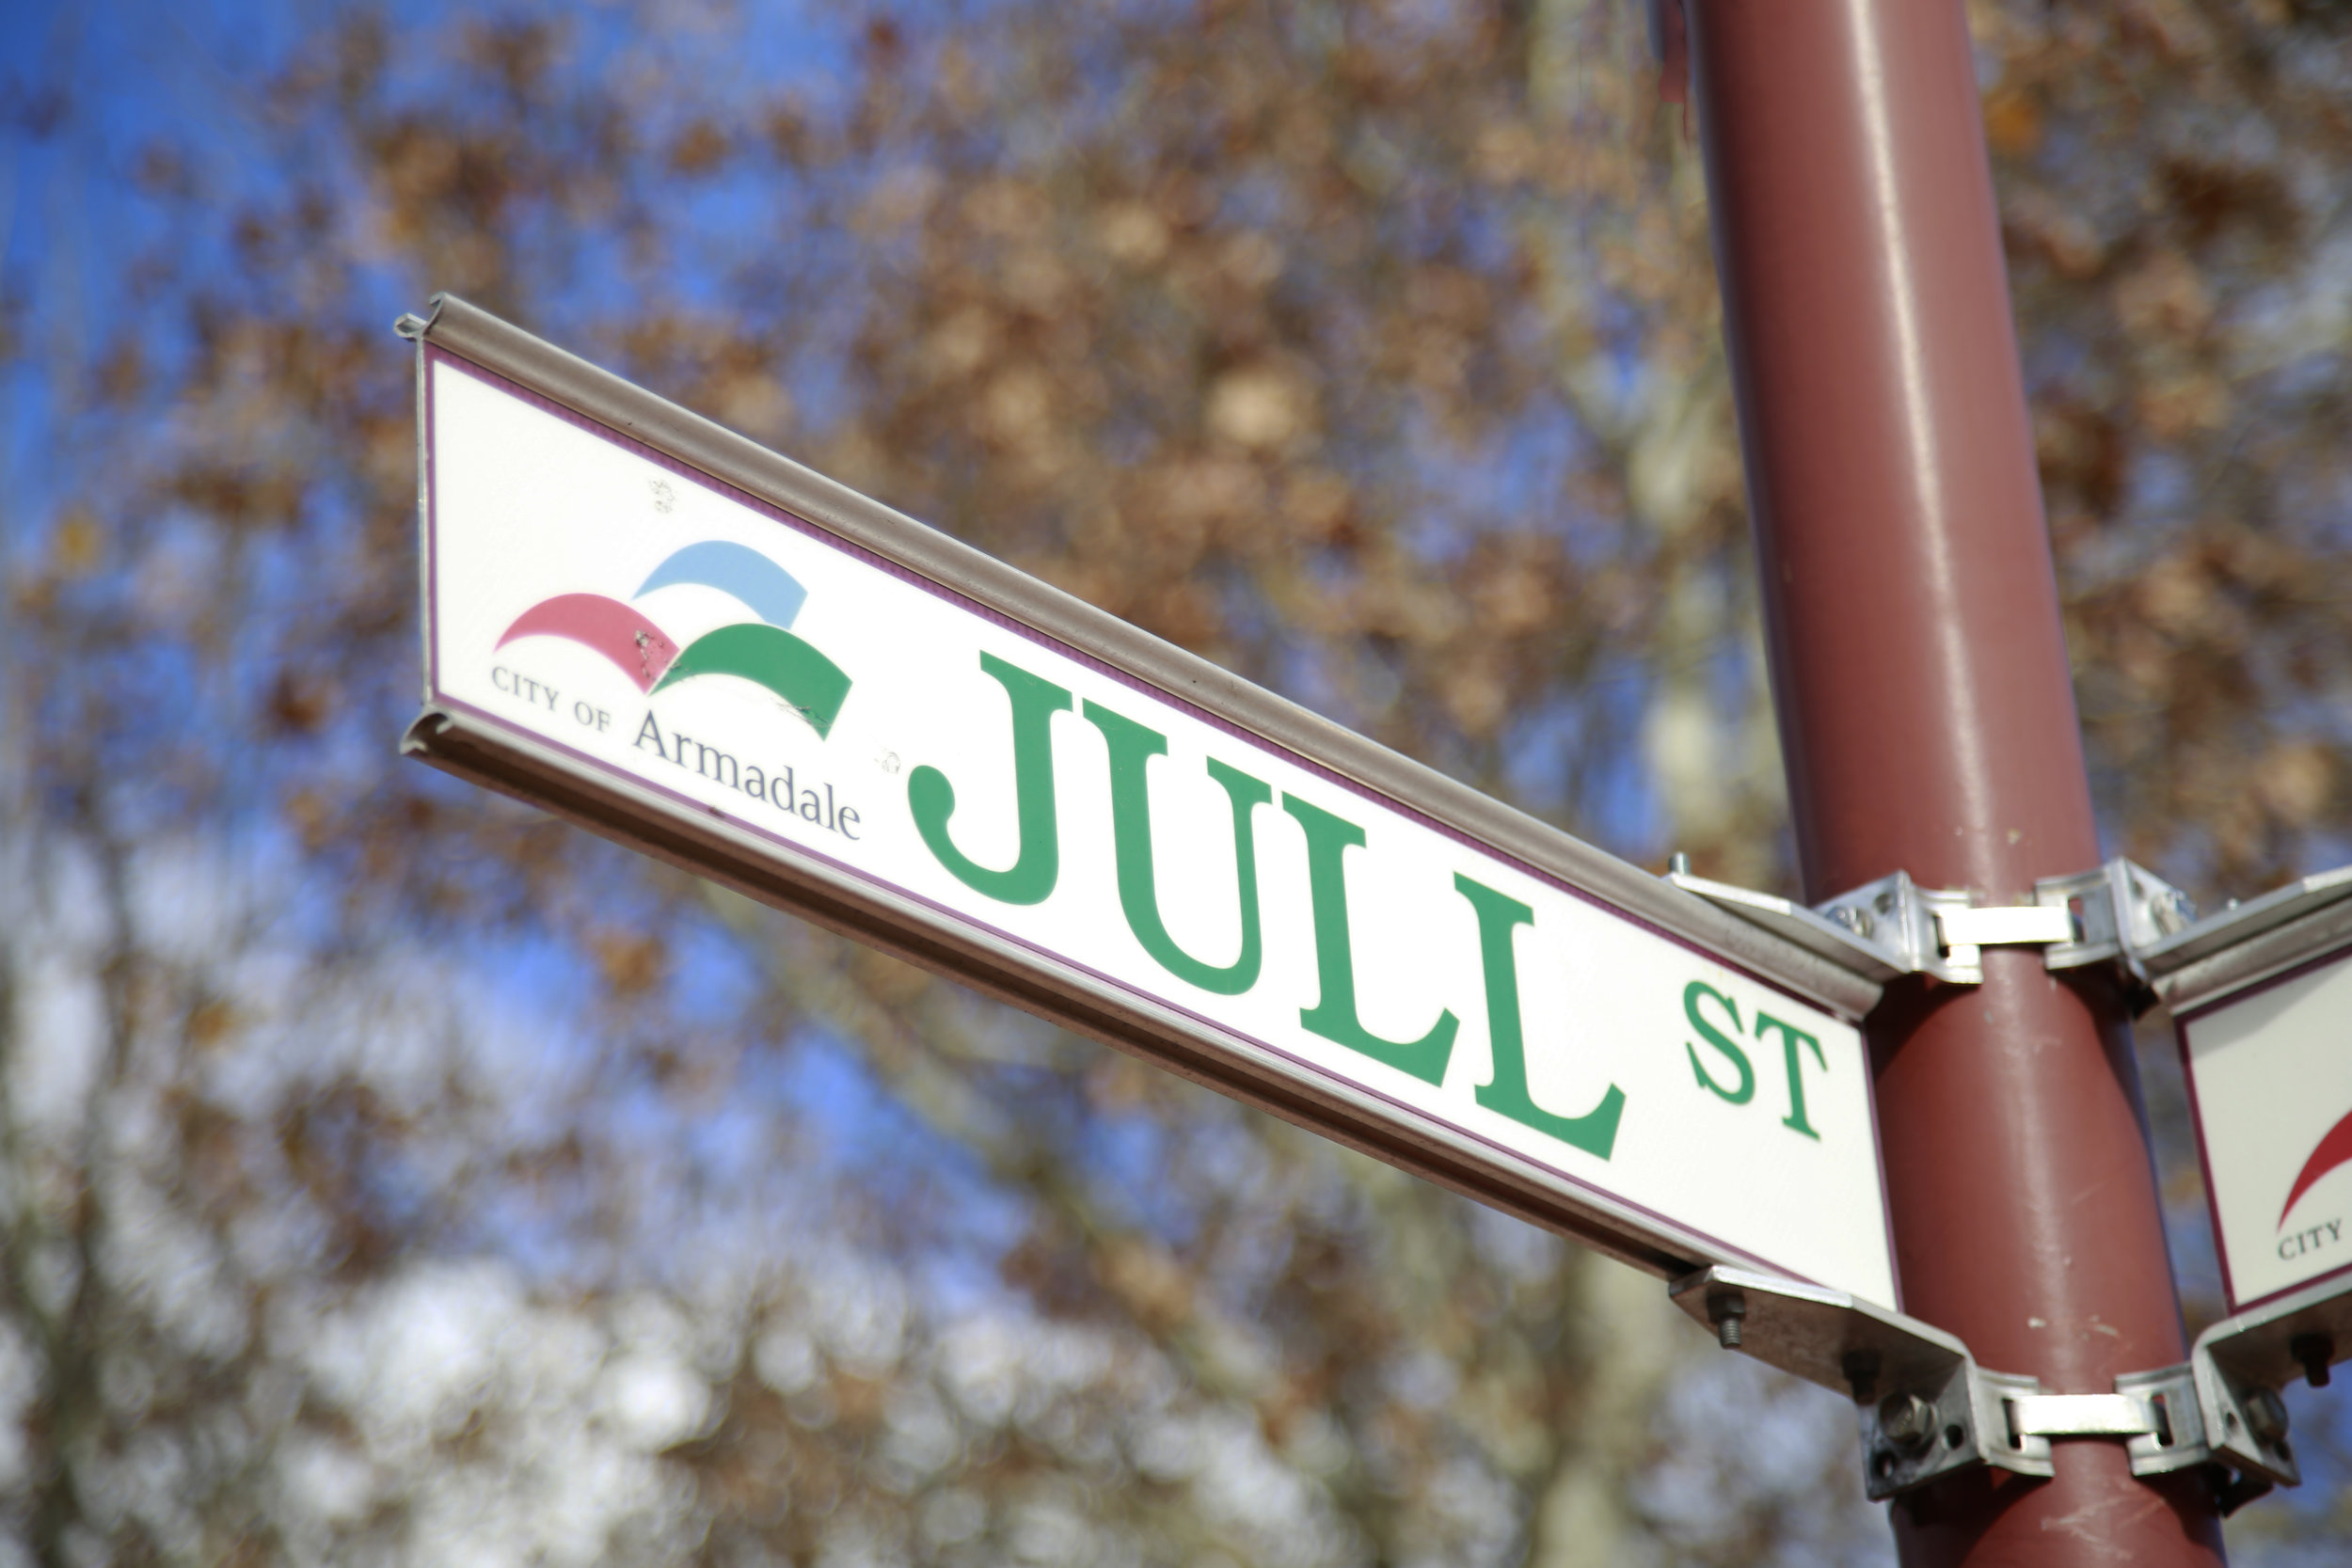 Many places of interest and public artworks can be found in Armadale's historic Jull Street Mall.